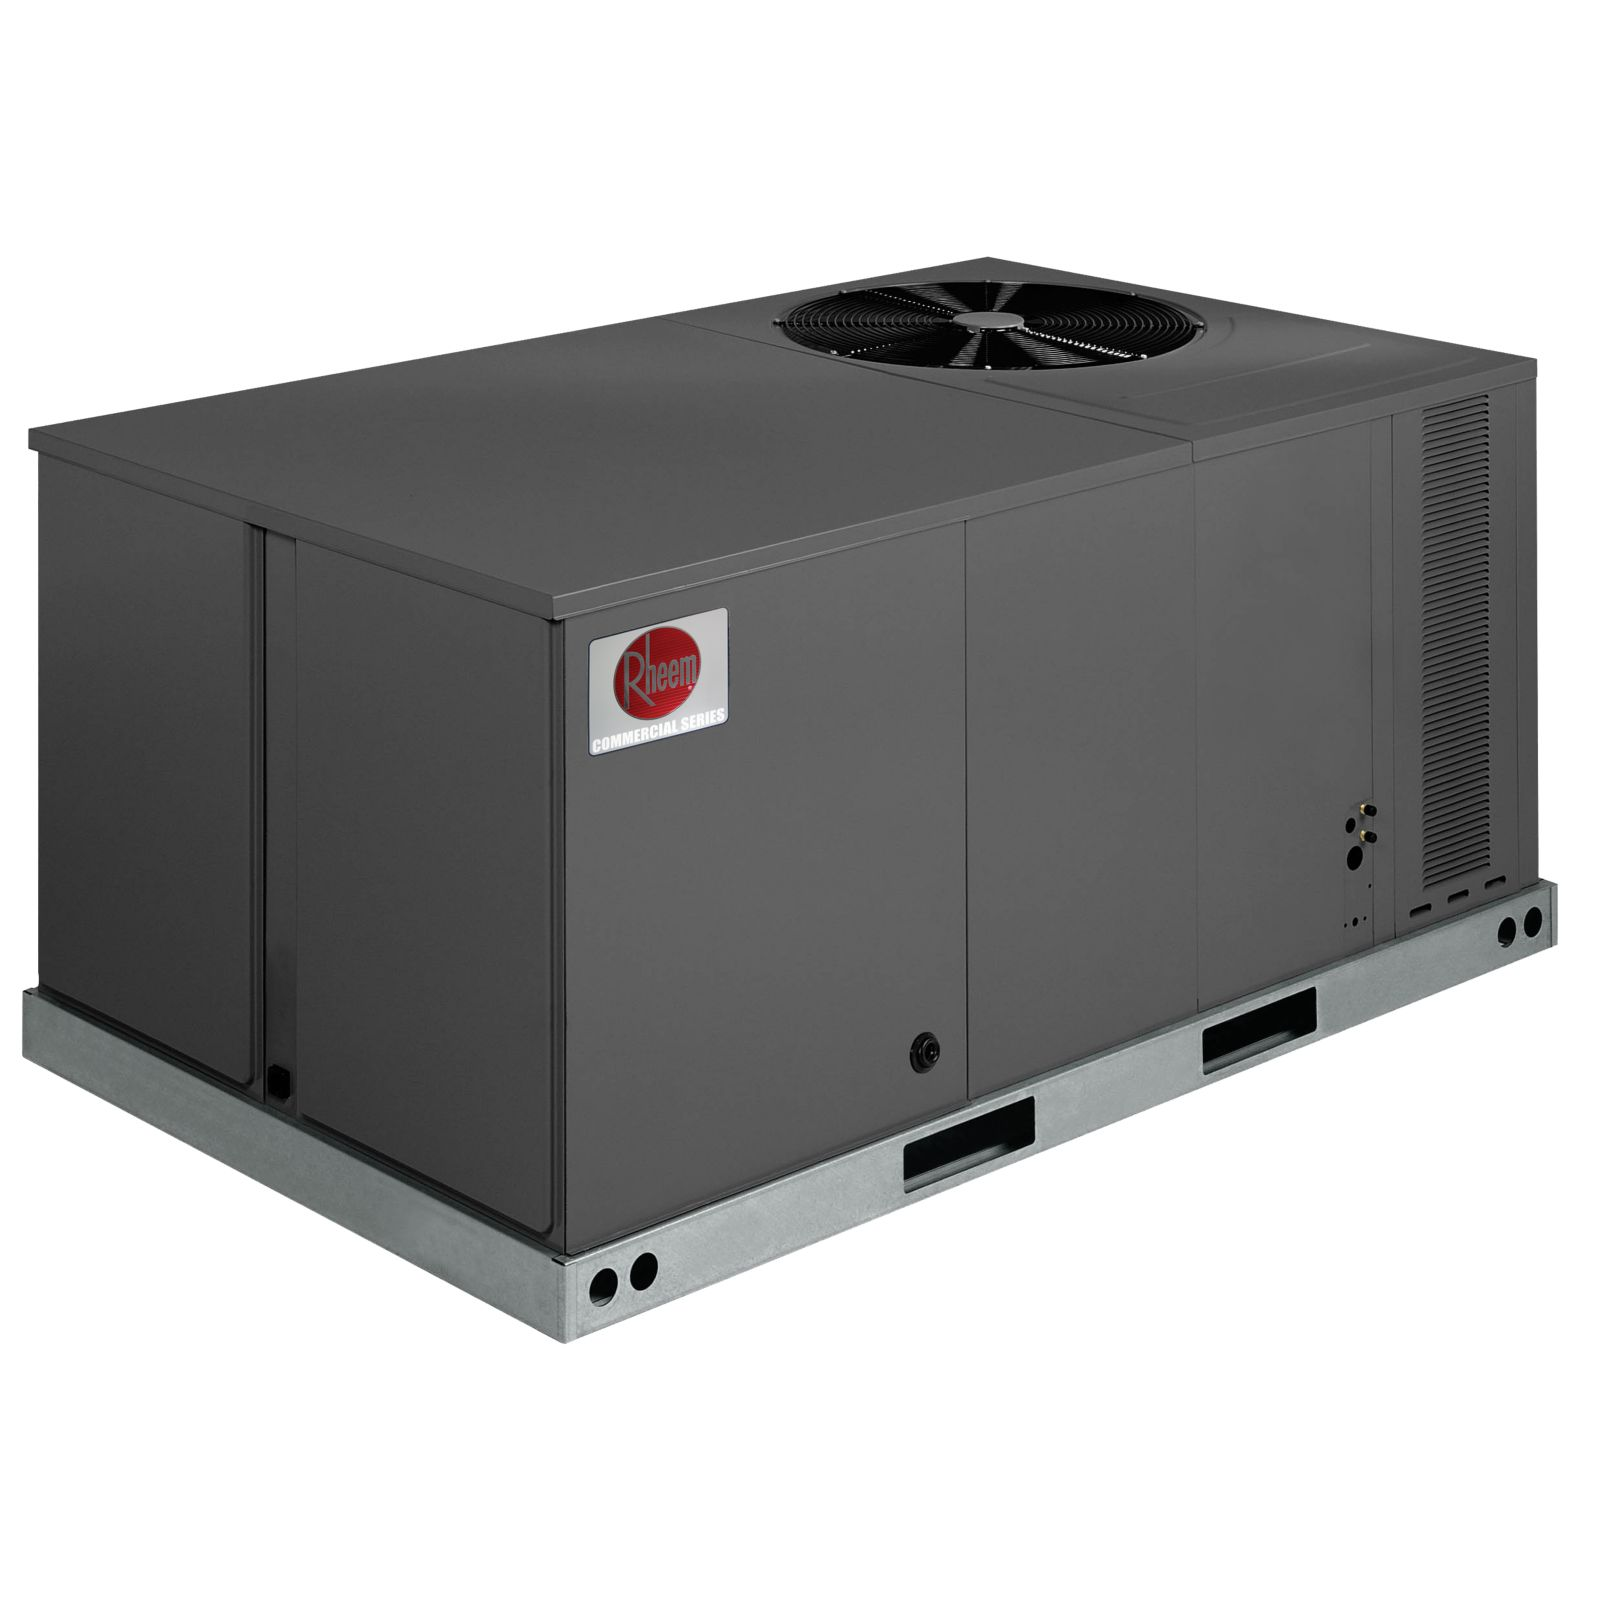 Rheem RJPL-A060JK000 - Classic Series 5 Ton Light Commercial Packaged Heat Pump, 14 SEER - R410A, 208-230 V, 1 Ph, 60 Hz